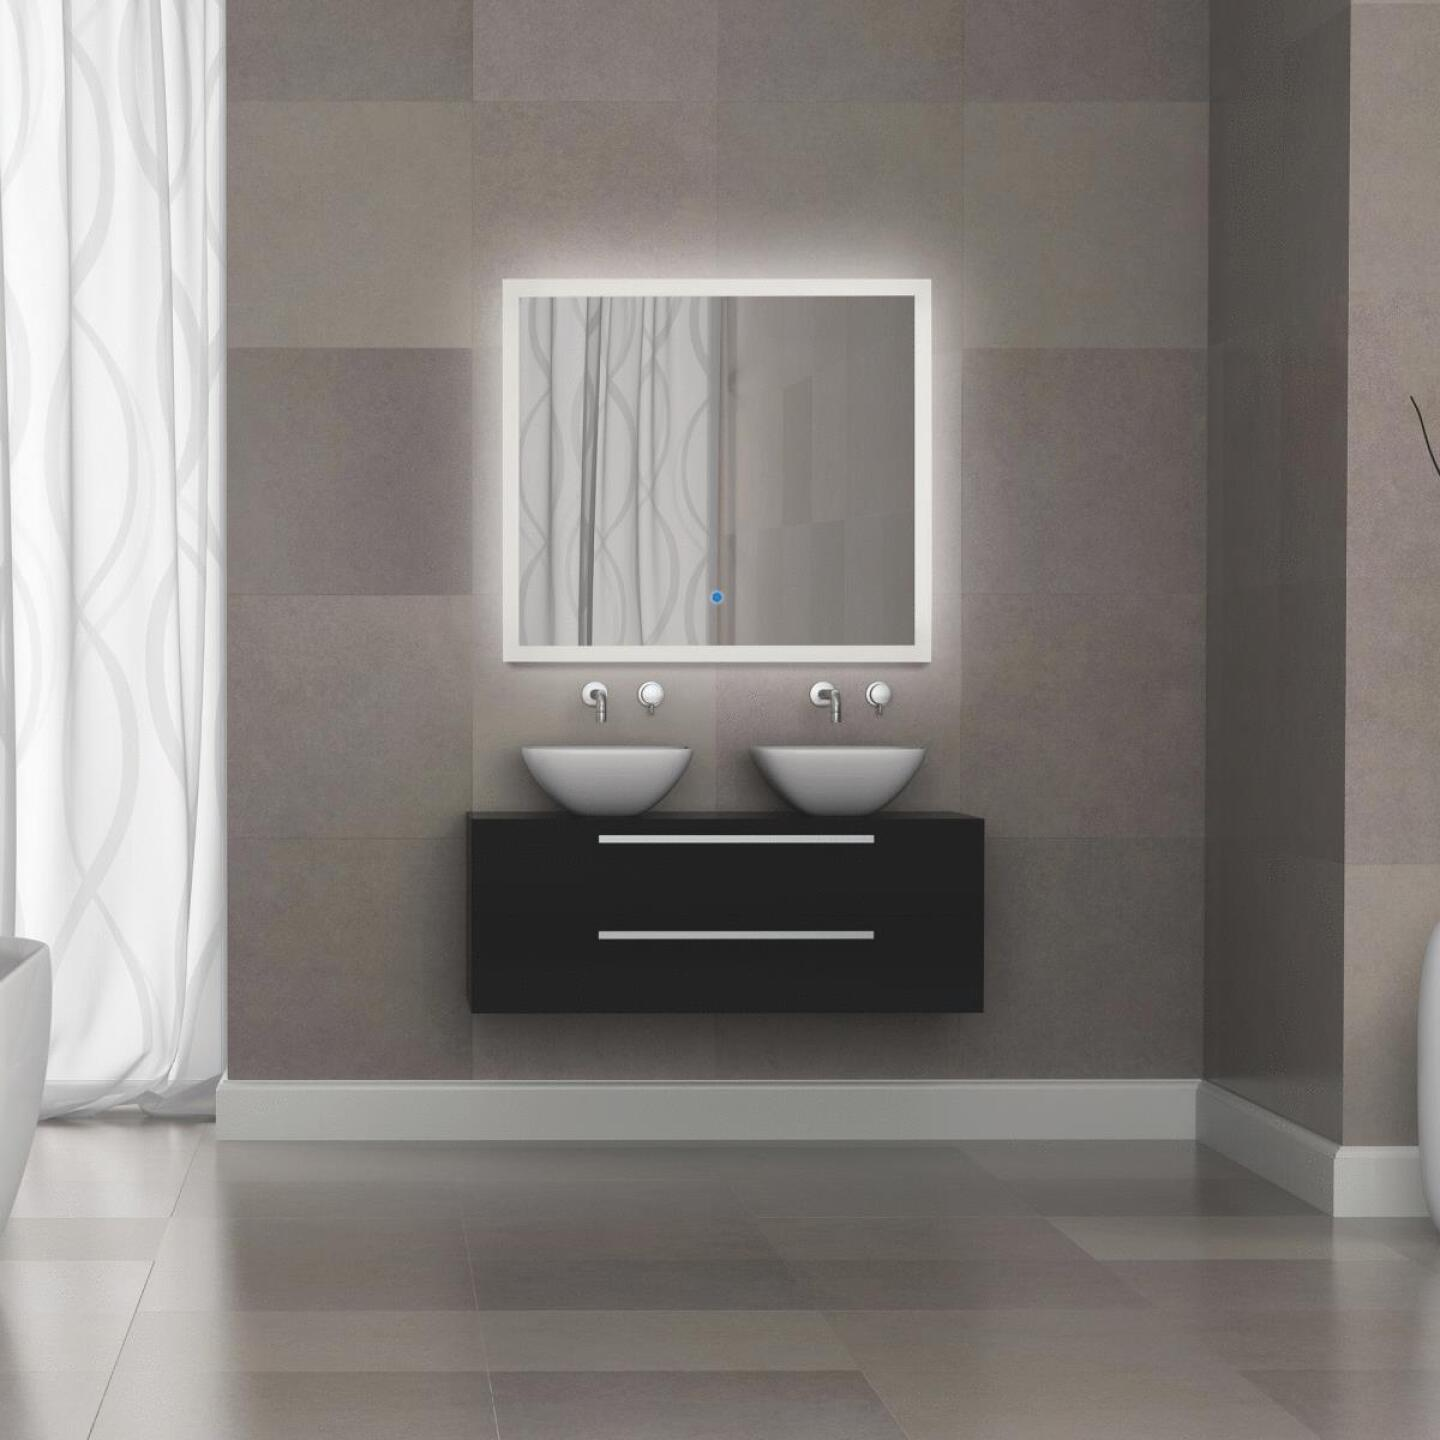 Renin Landscape 32 In. W. x 36 In. H. Polished Edge Backlit Wall Mirror Image 2